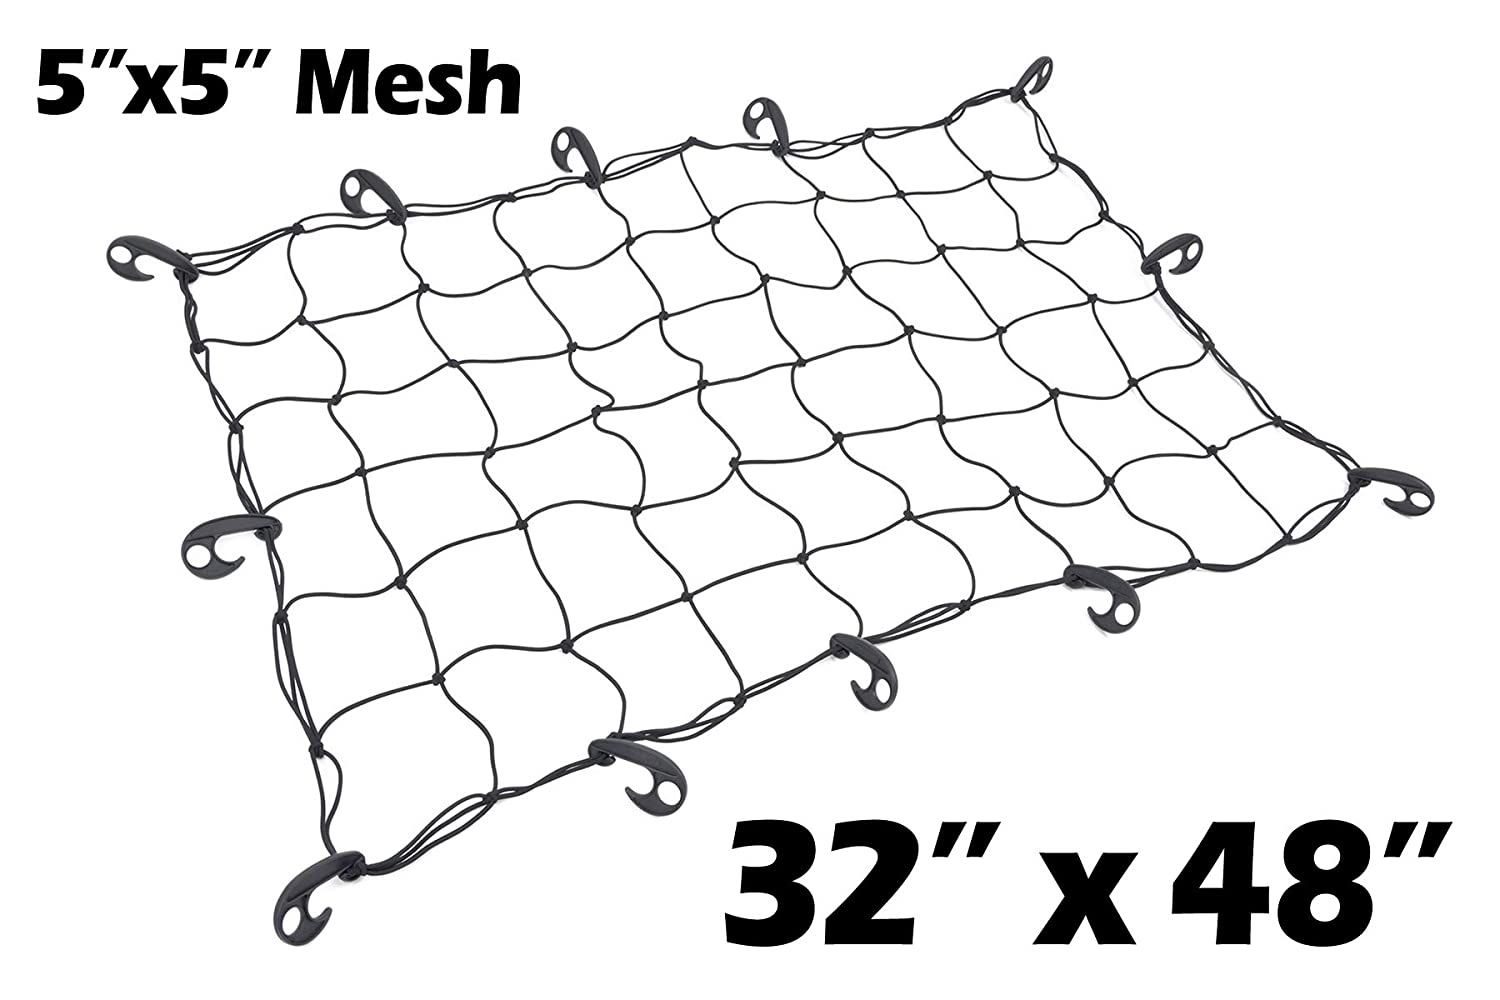 32' x 48' PowerTye Mfg Utility Elastic Cargo Net with 5'x5' Latex Bungee Mesh, 12 Large Adjustable Hooks, Black Net 4333199473